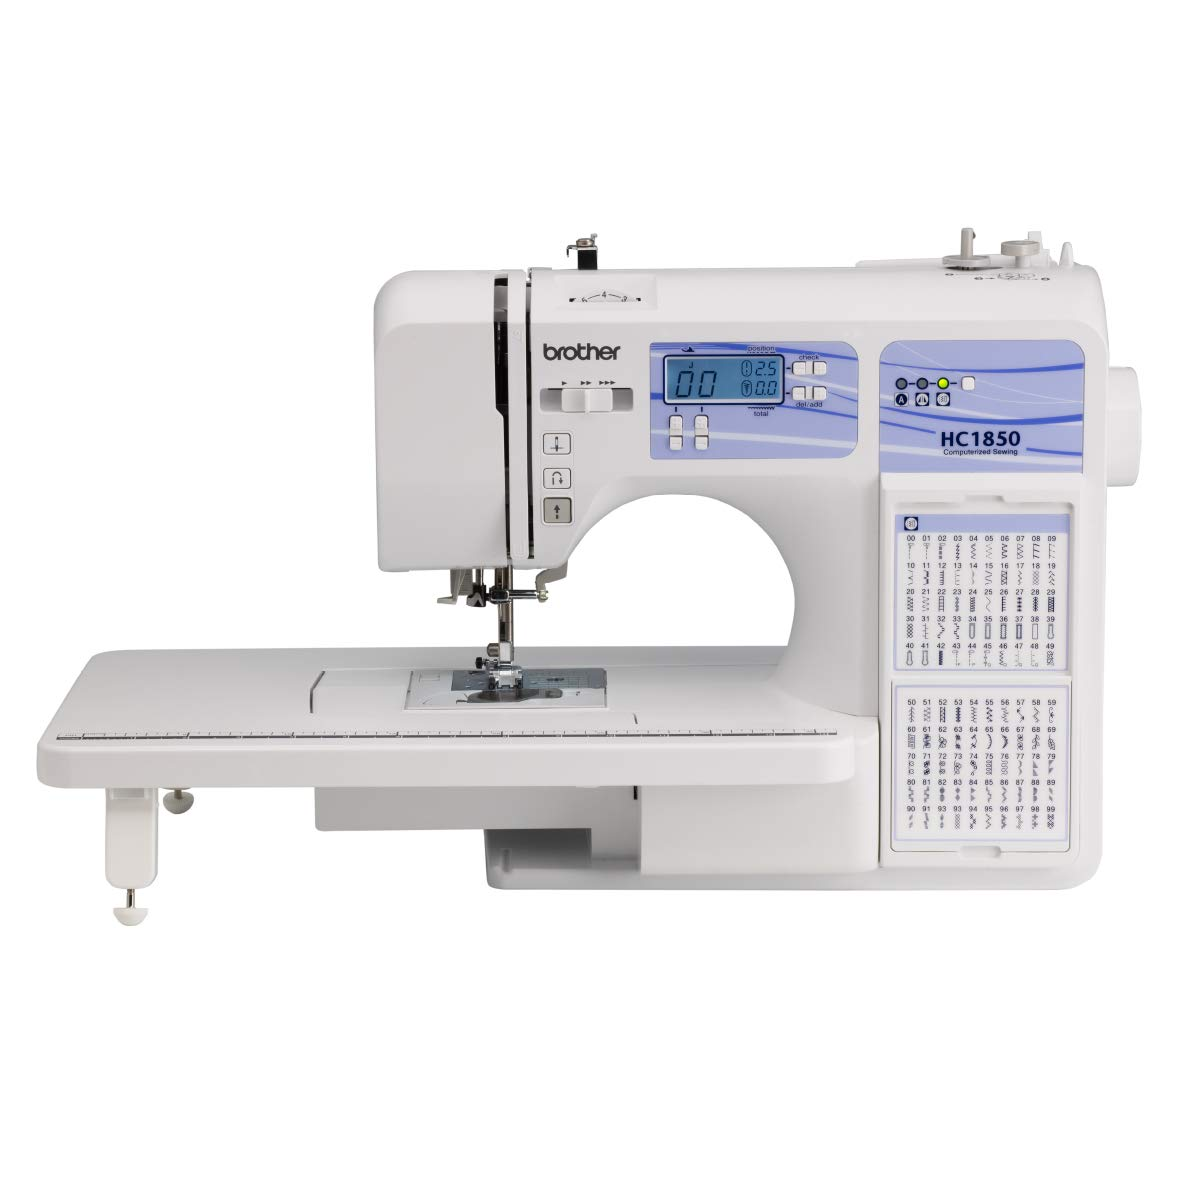 Brother Computerized Sewing and Quilting Machine, HC1850, 130 Built-in Stitches, 8 Presser Feet, Sewing Font, Wide Table, 850 Stitches Per Minute